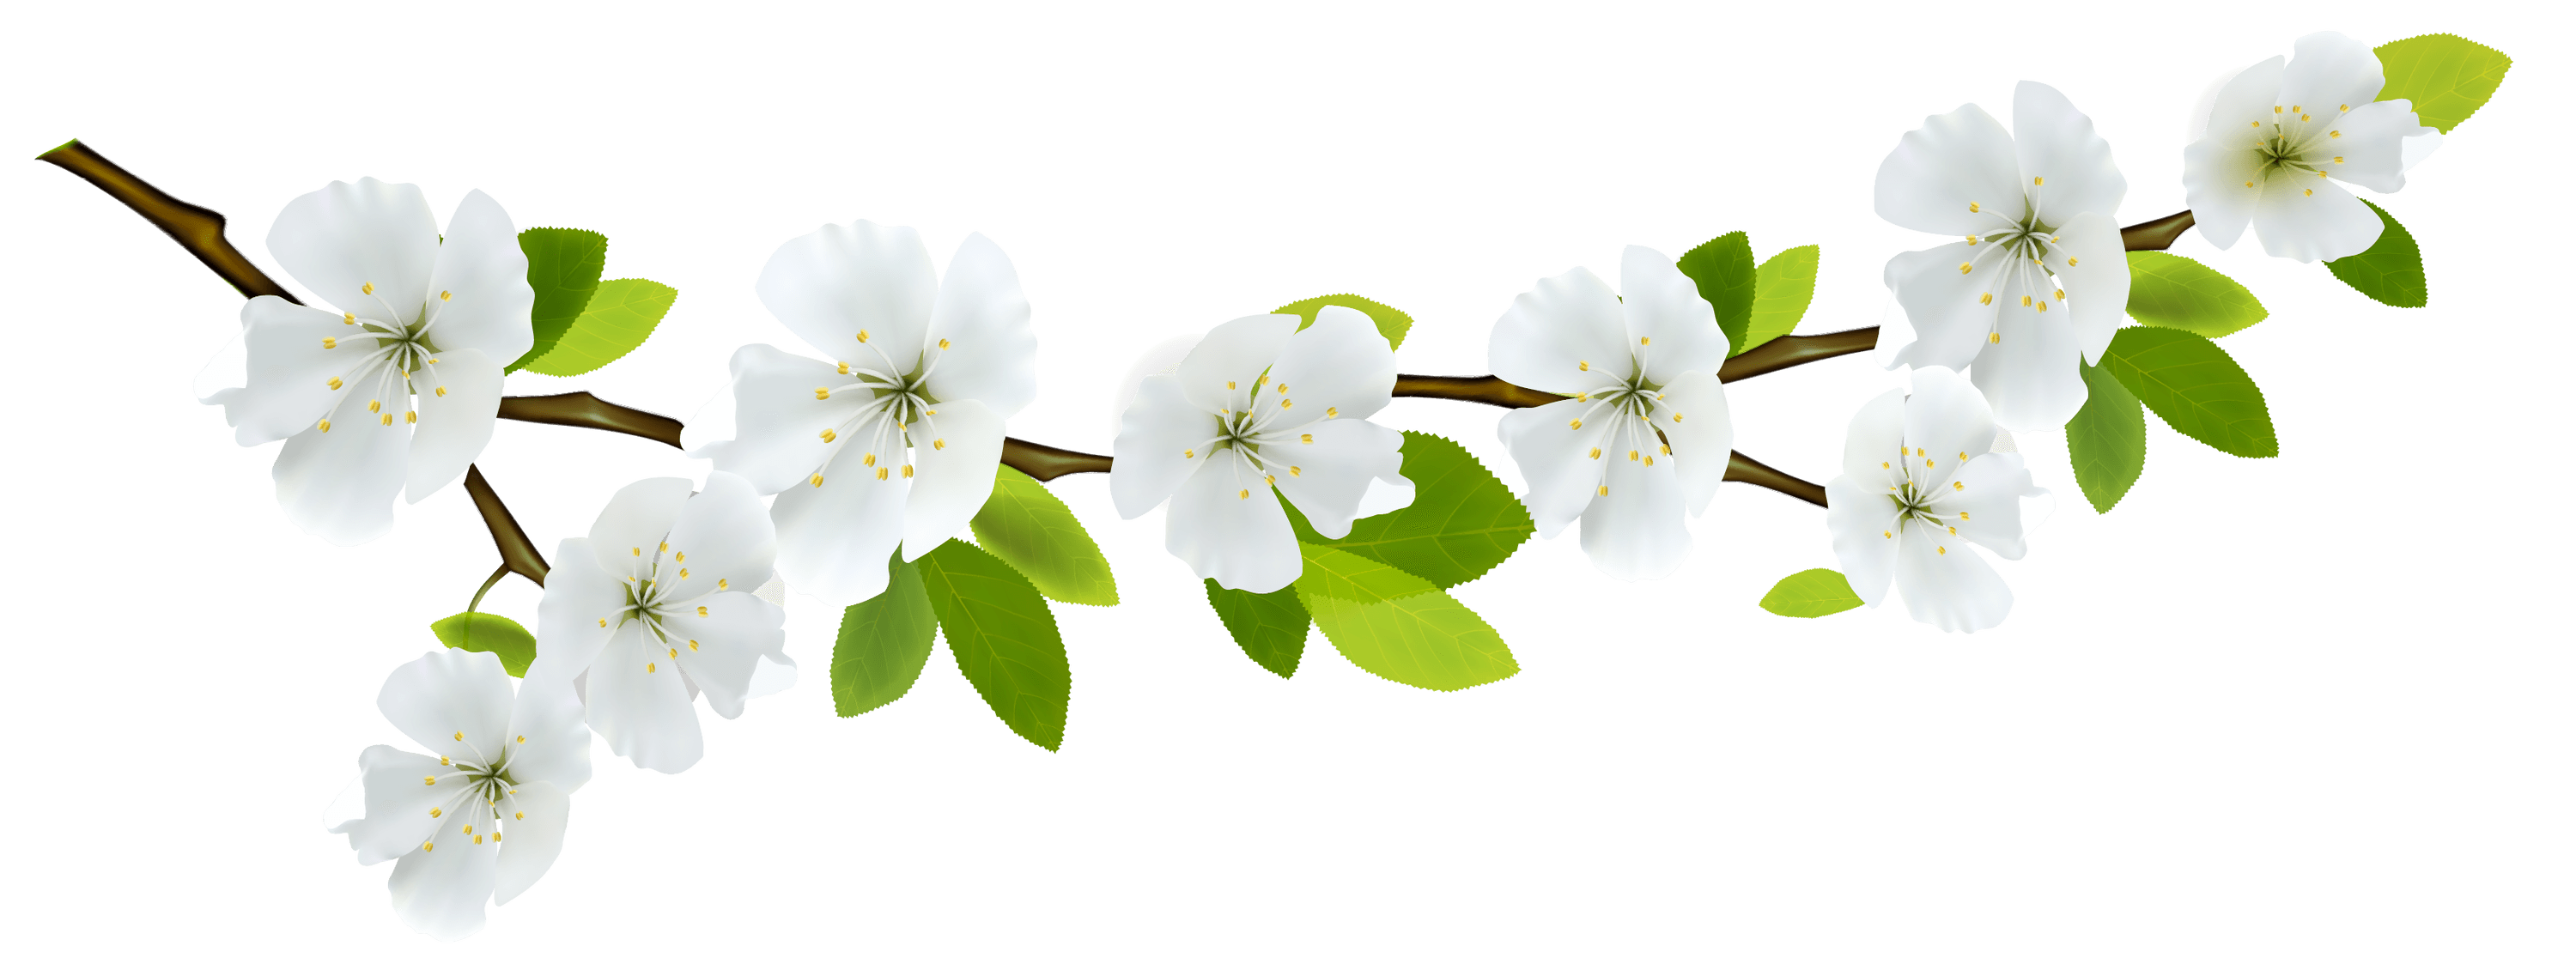 White Flowers Png Png Image